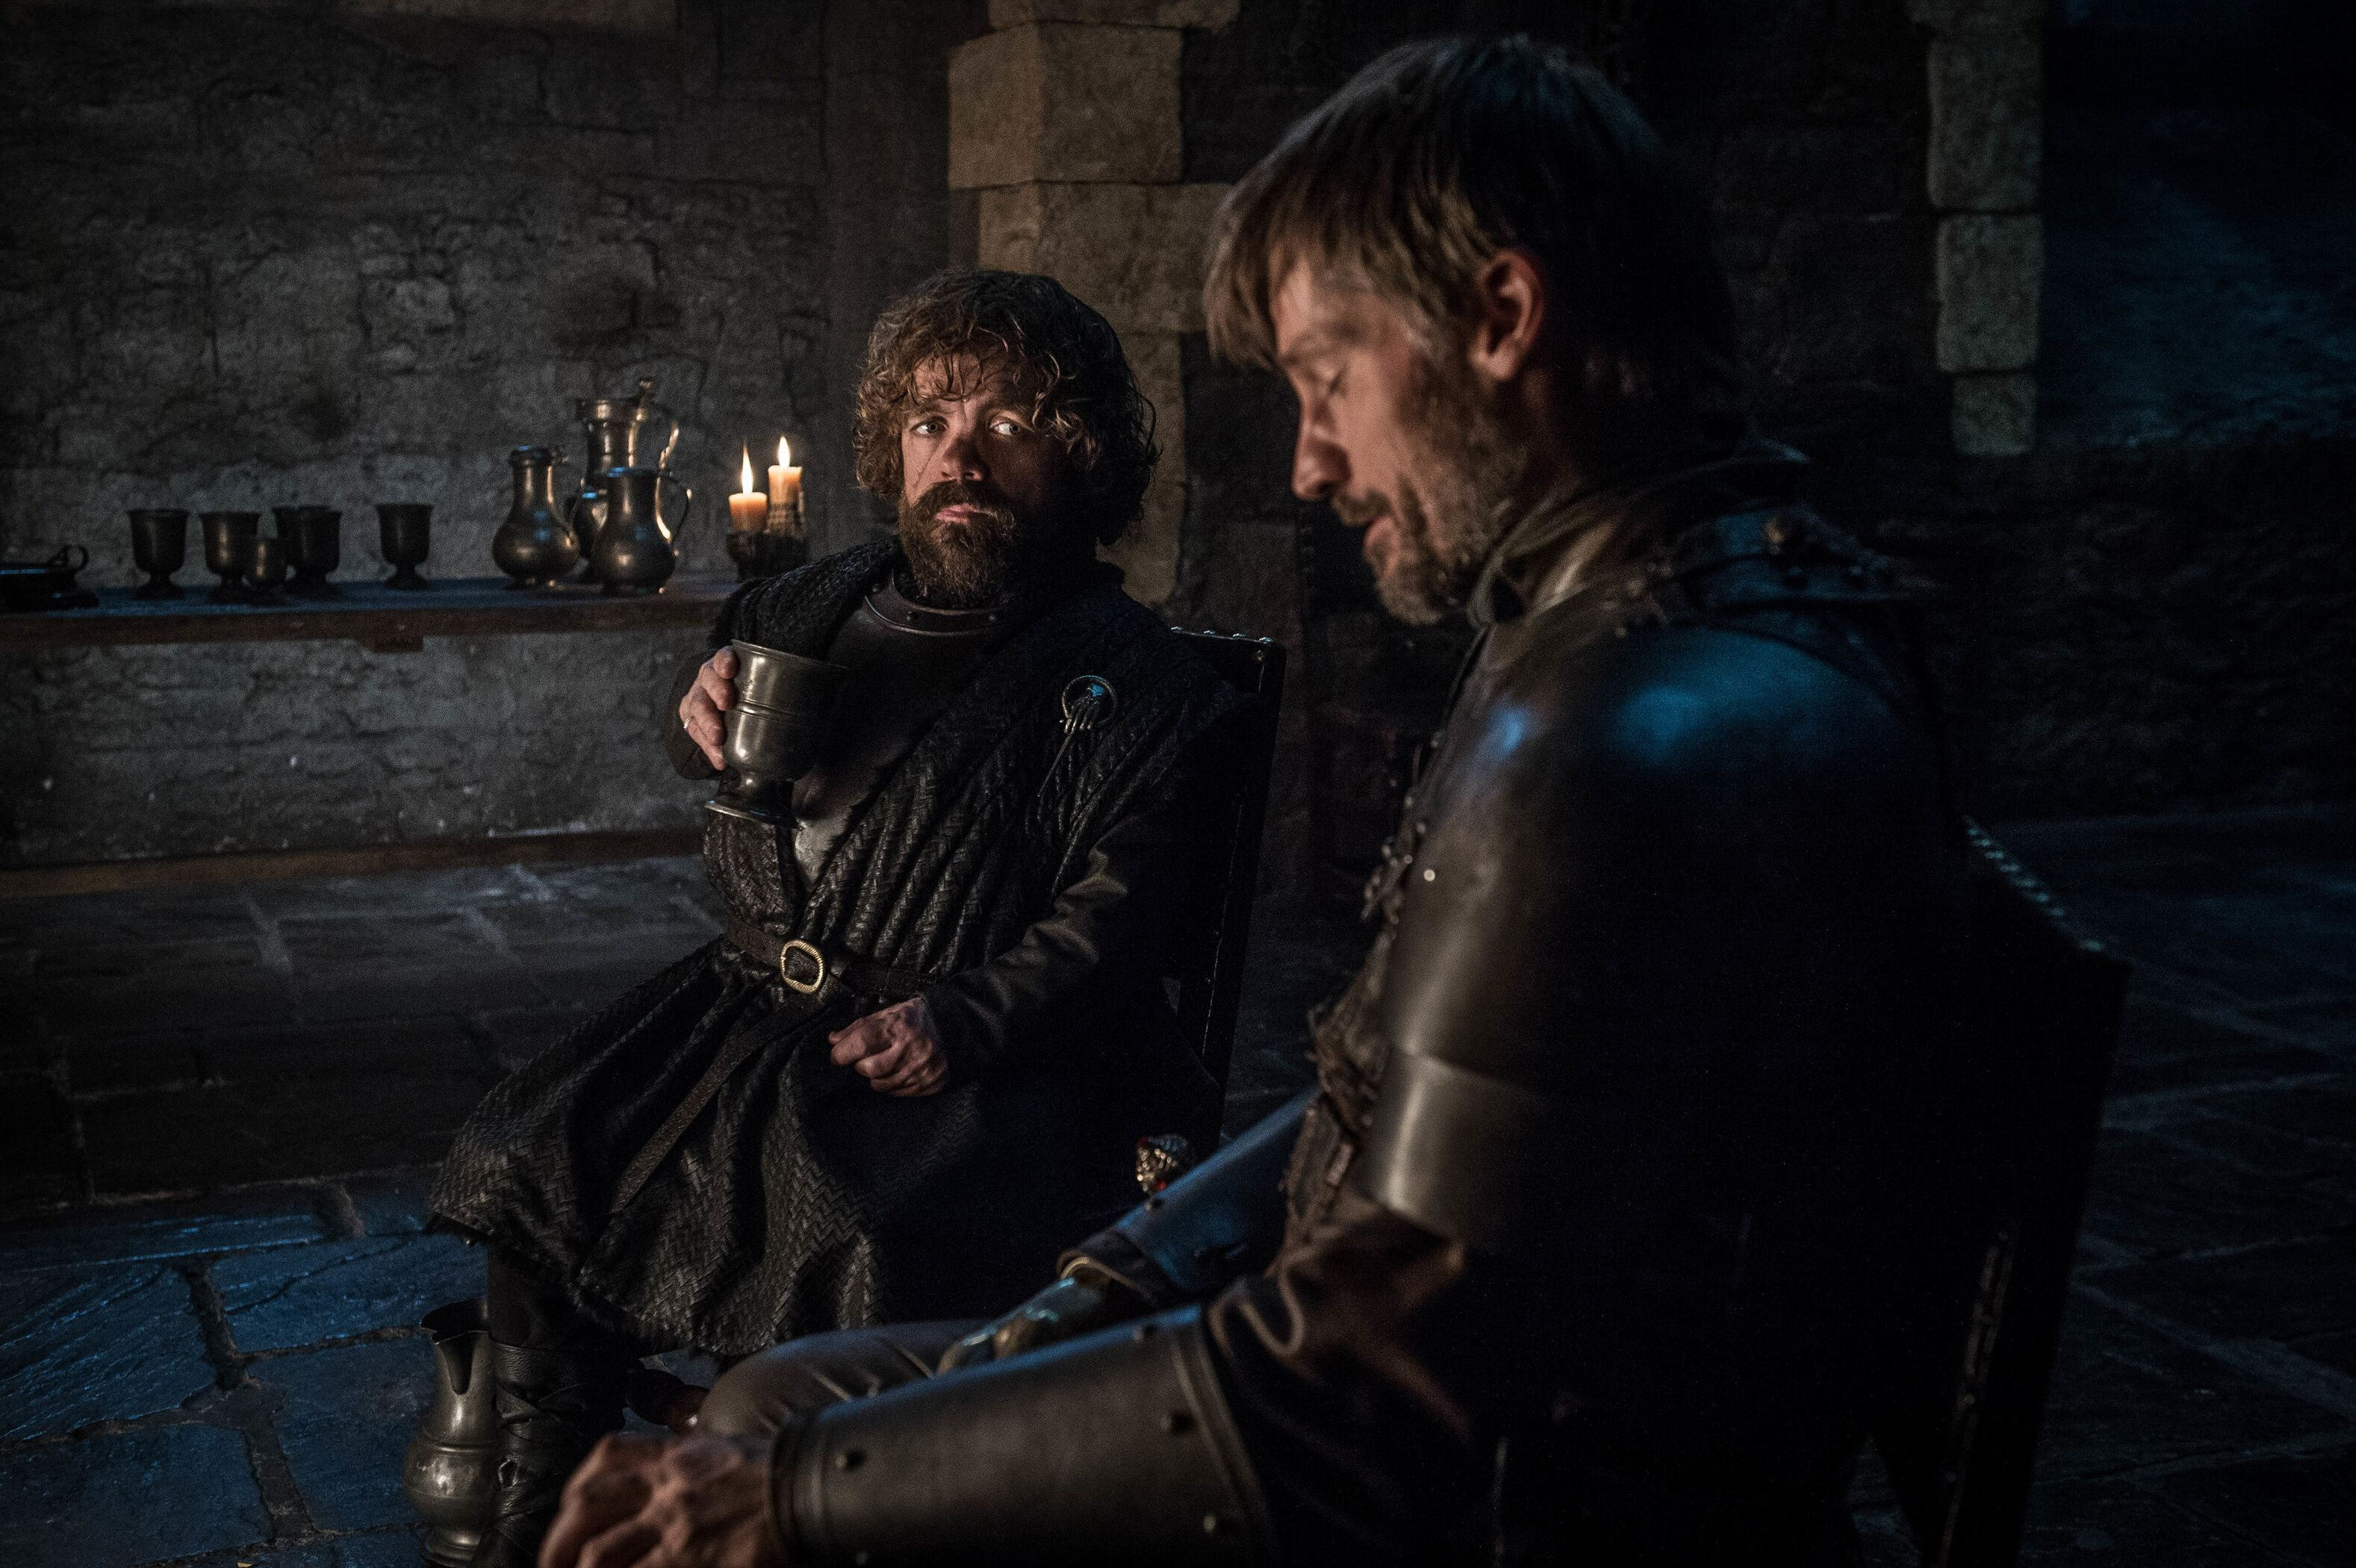 Game Of Thrones Season 8 Episode 2 Jaime and Tyrion Lannister